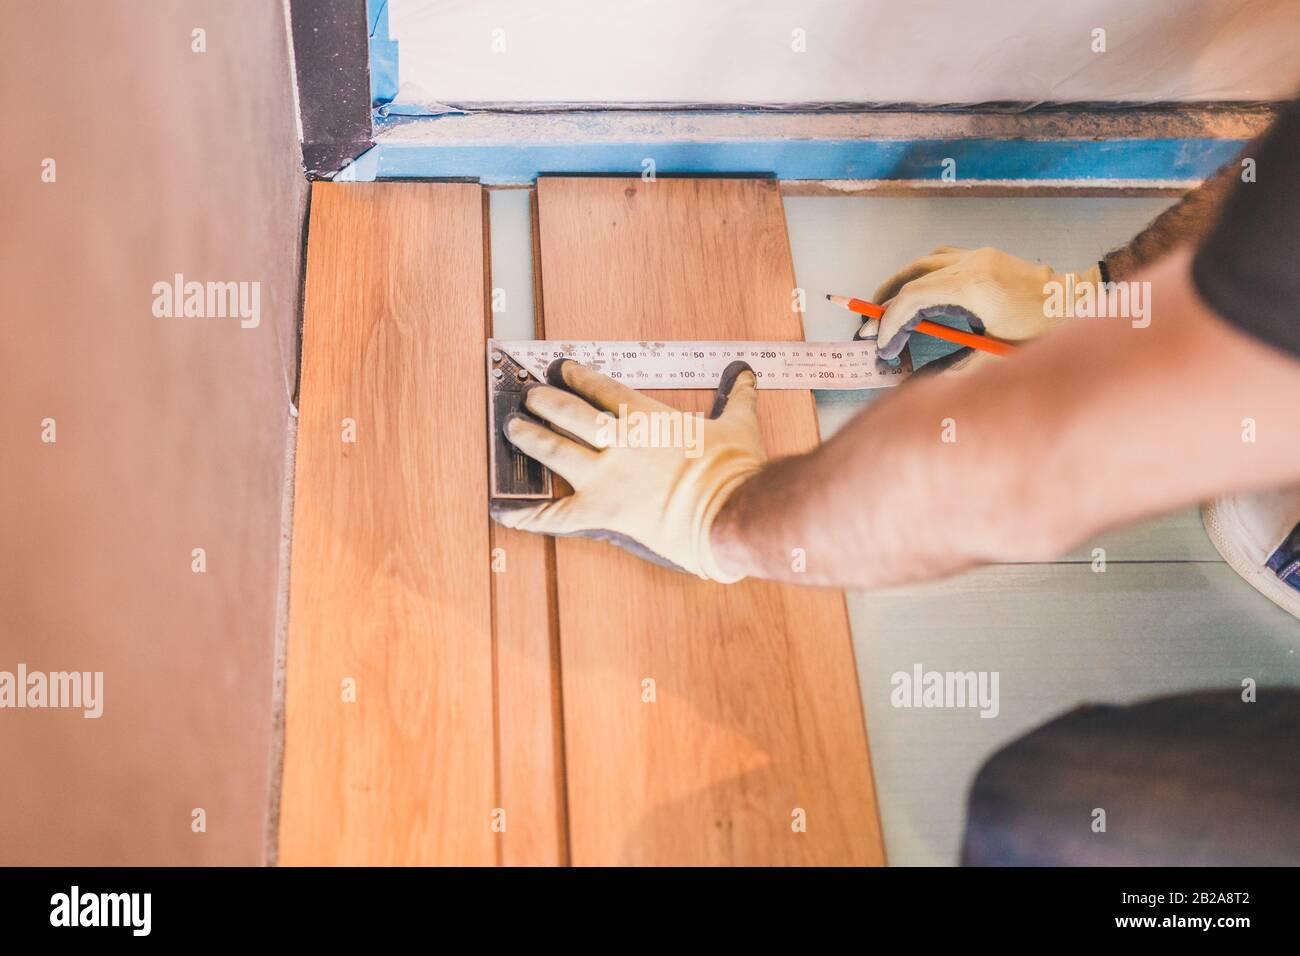 Worker measuring and marking laminate for cutting - installing floating floor - close-up on hands - home renovation concept Stock Photo